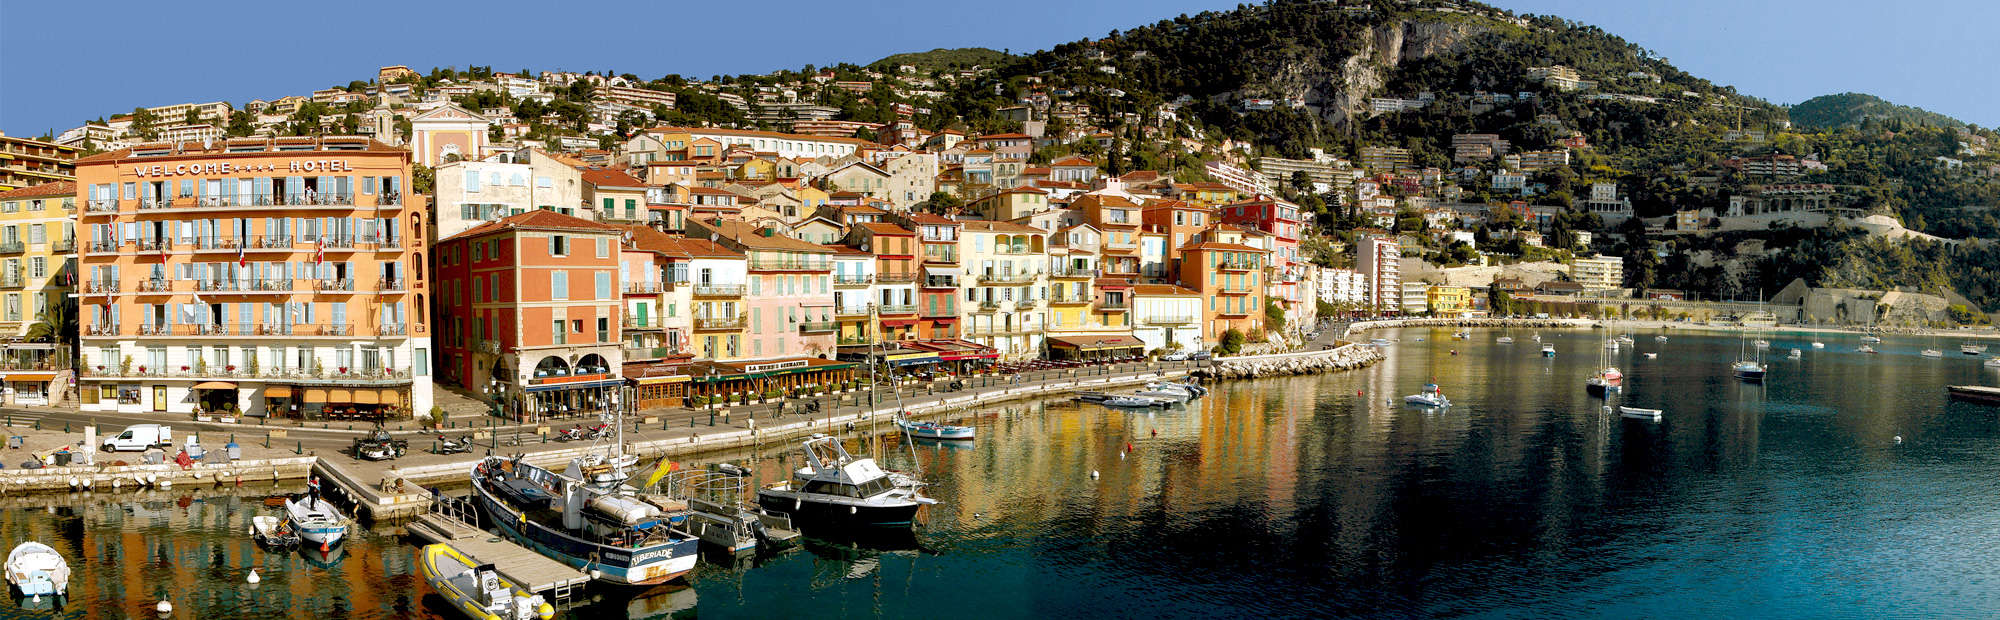 Villefranche-sur-Mer, Cote d'Azur French Riviera, Charming Town, Hotels, restaurants, beaches